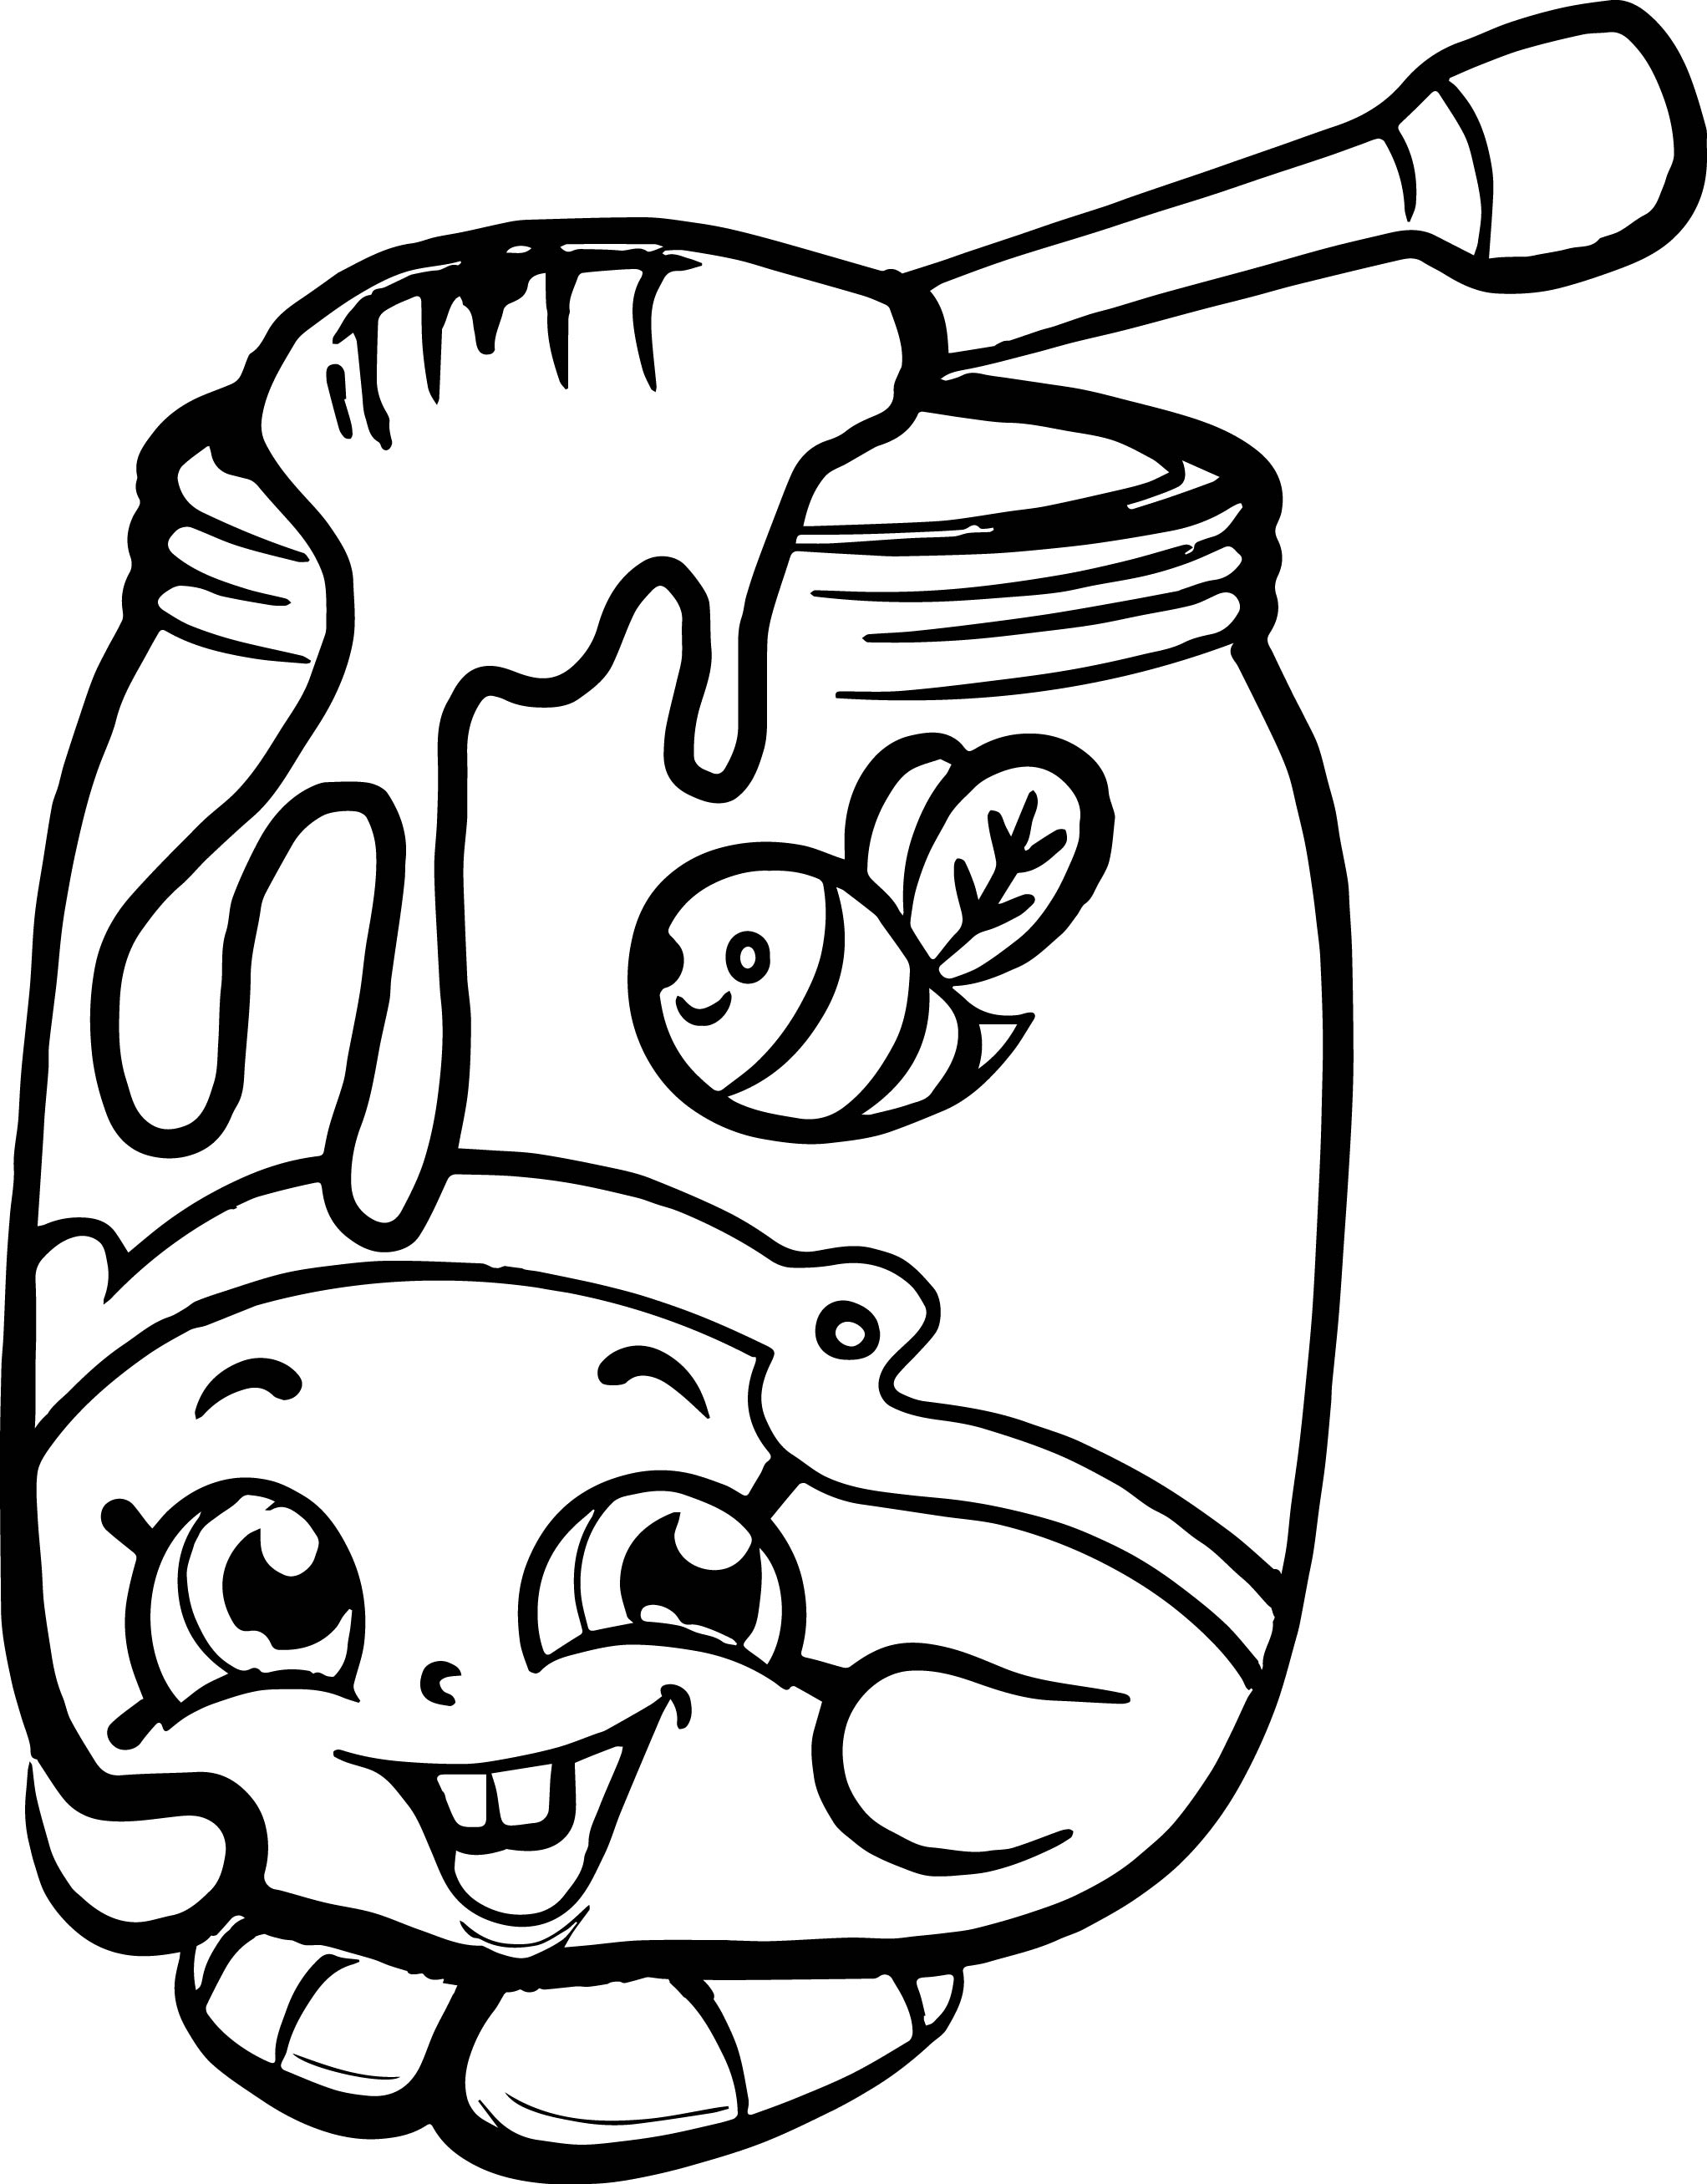 Shopkins color sheets - Shopkins Coloring Pages Honeeey Shopkins Coloring Page